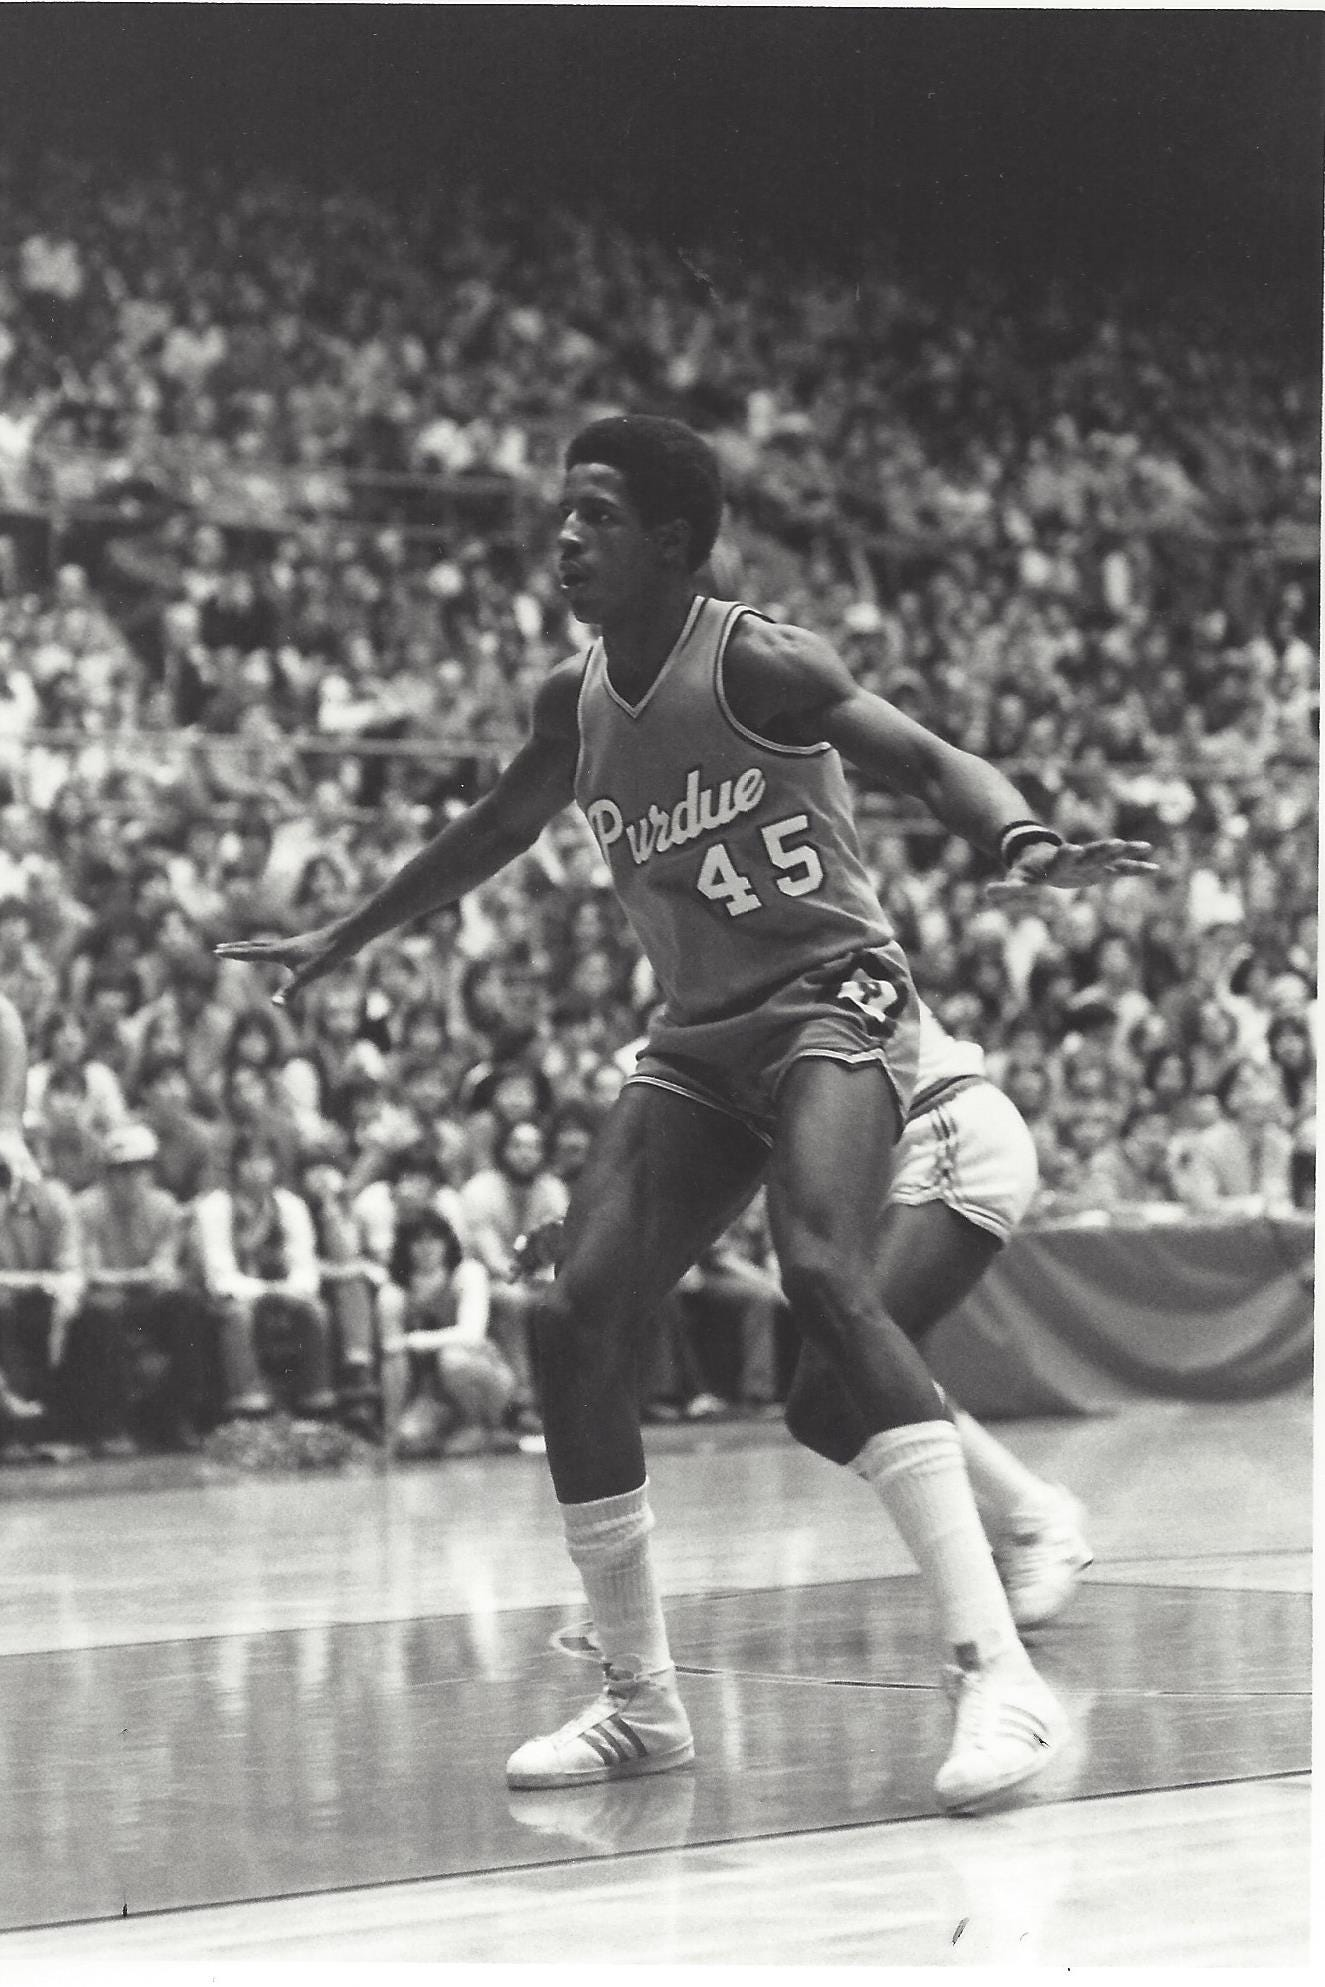 Arnette Hallman is best remembered by Purdue fans for his jumping ability and his game-winning shot against No. 1 Michigan State in 1979.